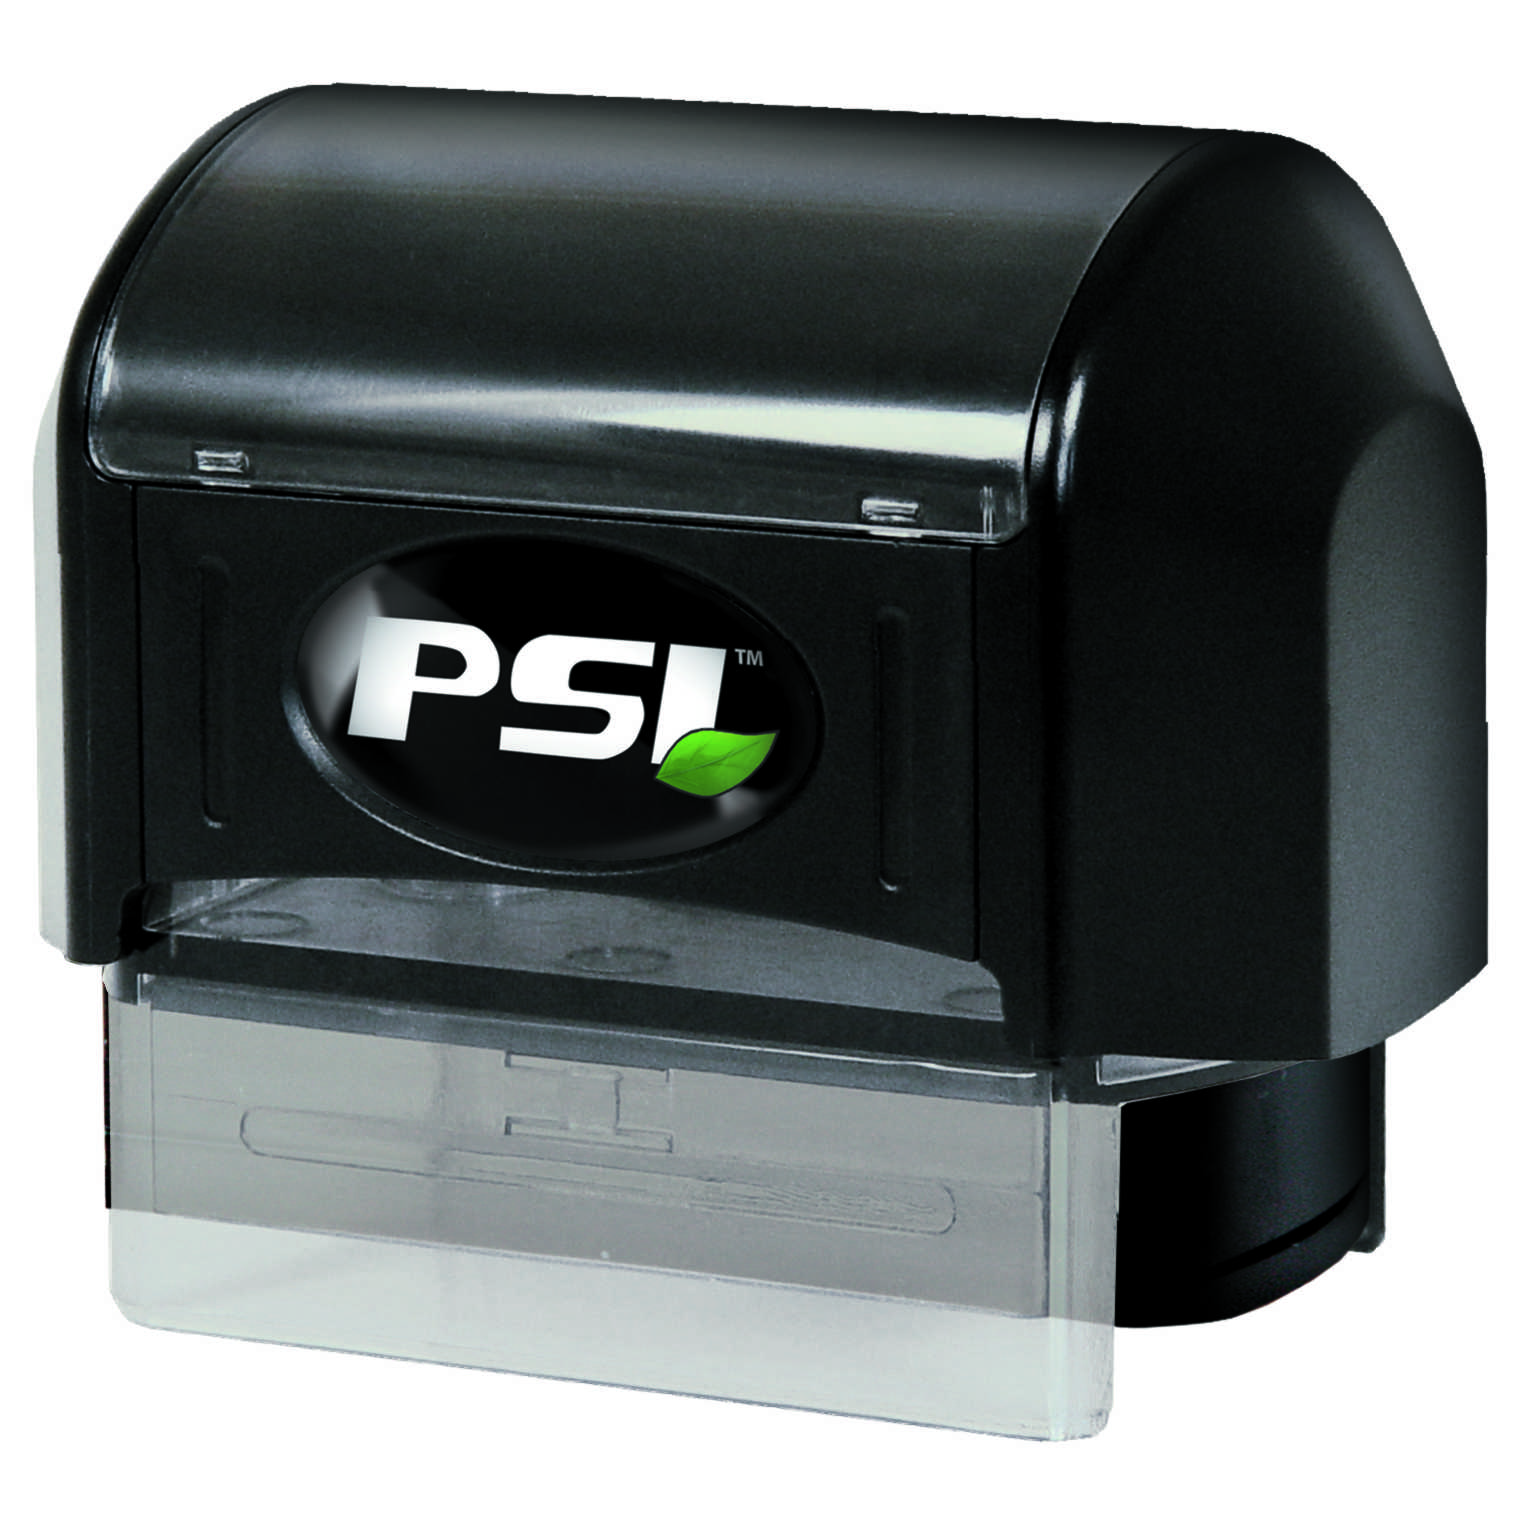 "PSI Green Line 3255 (1 1/4"" x 2 1/4"")"